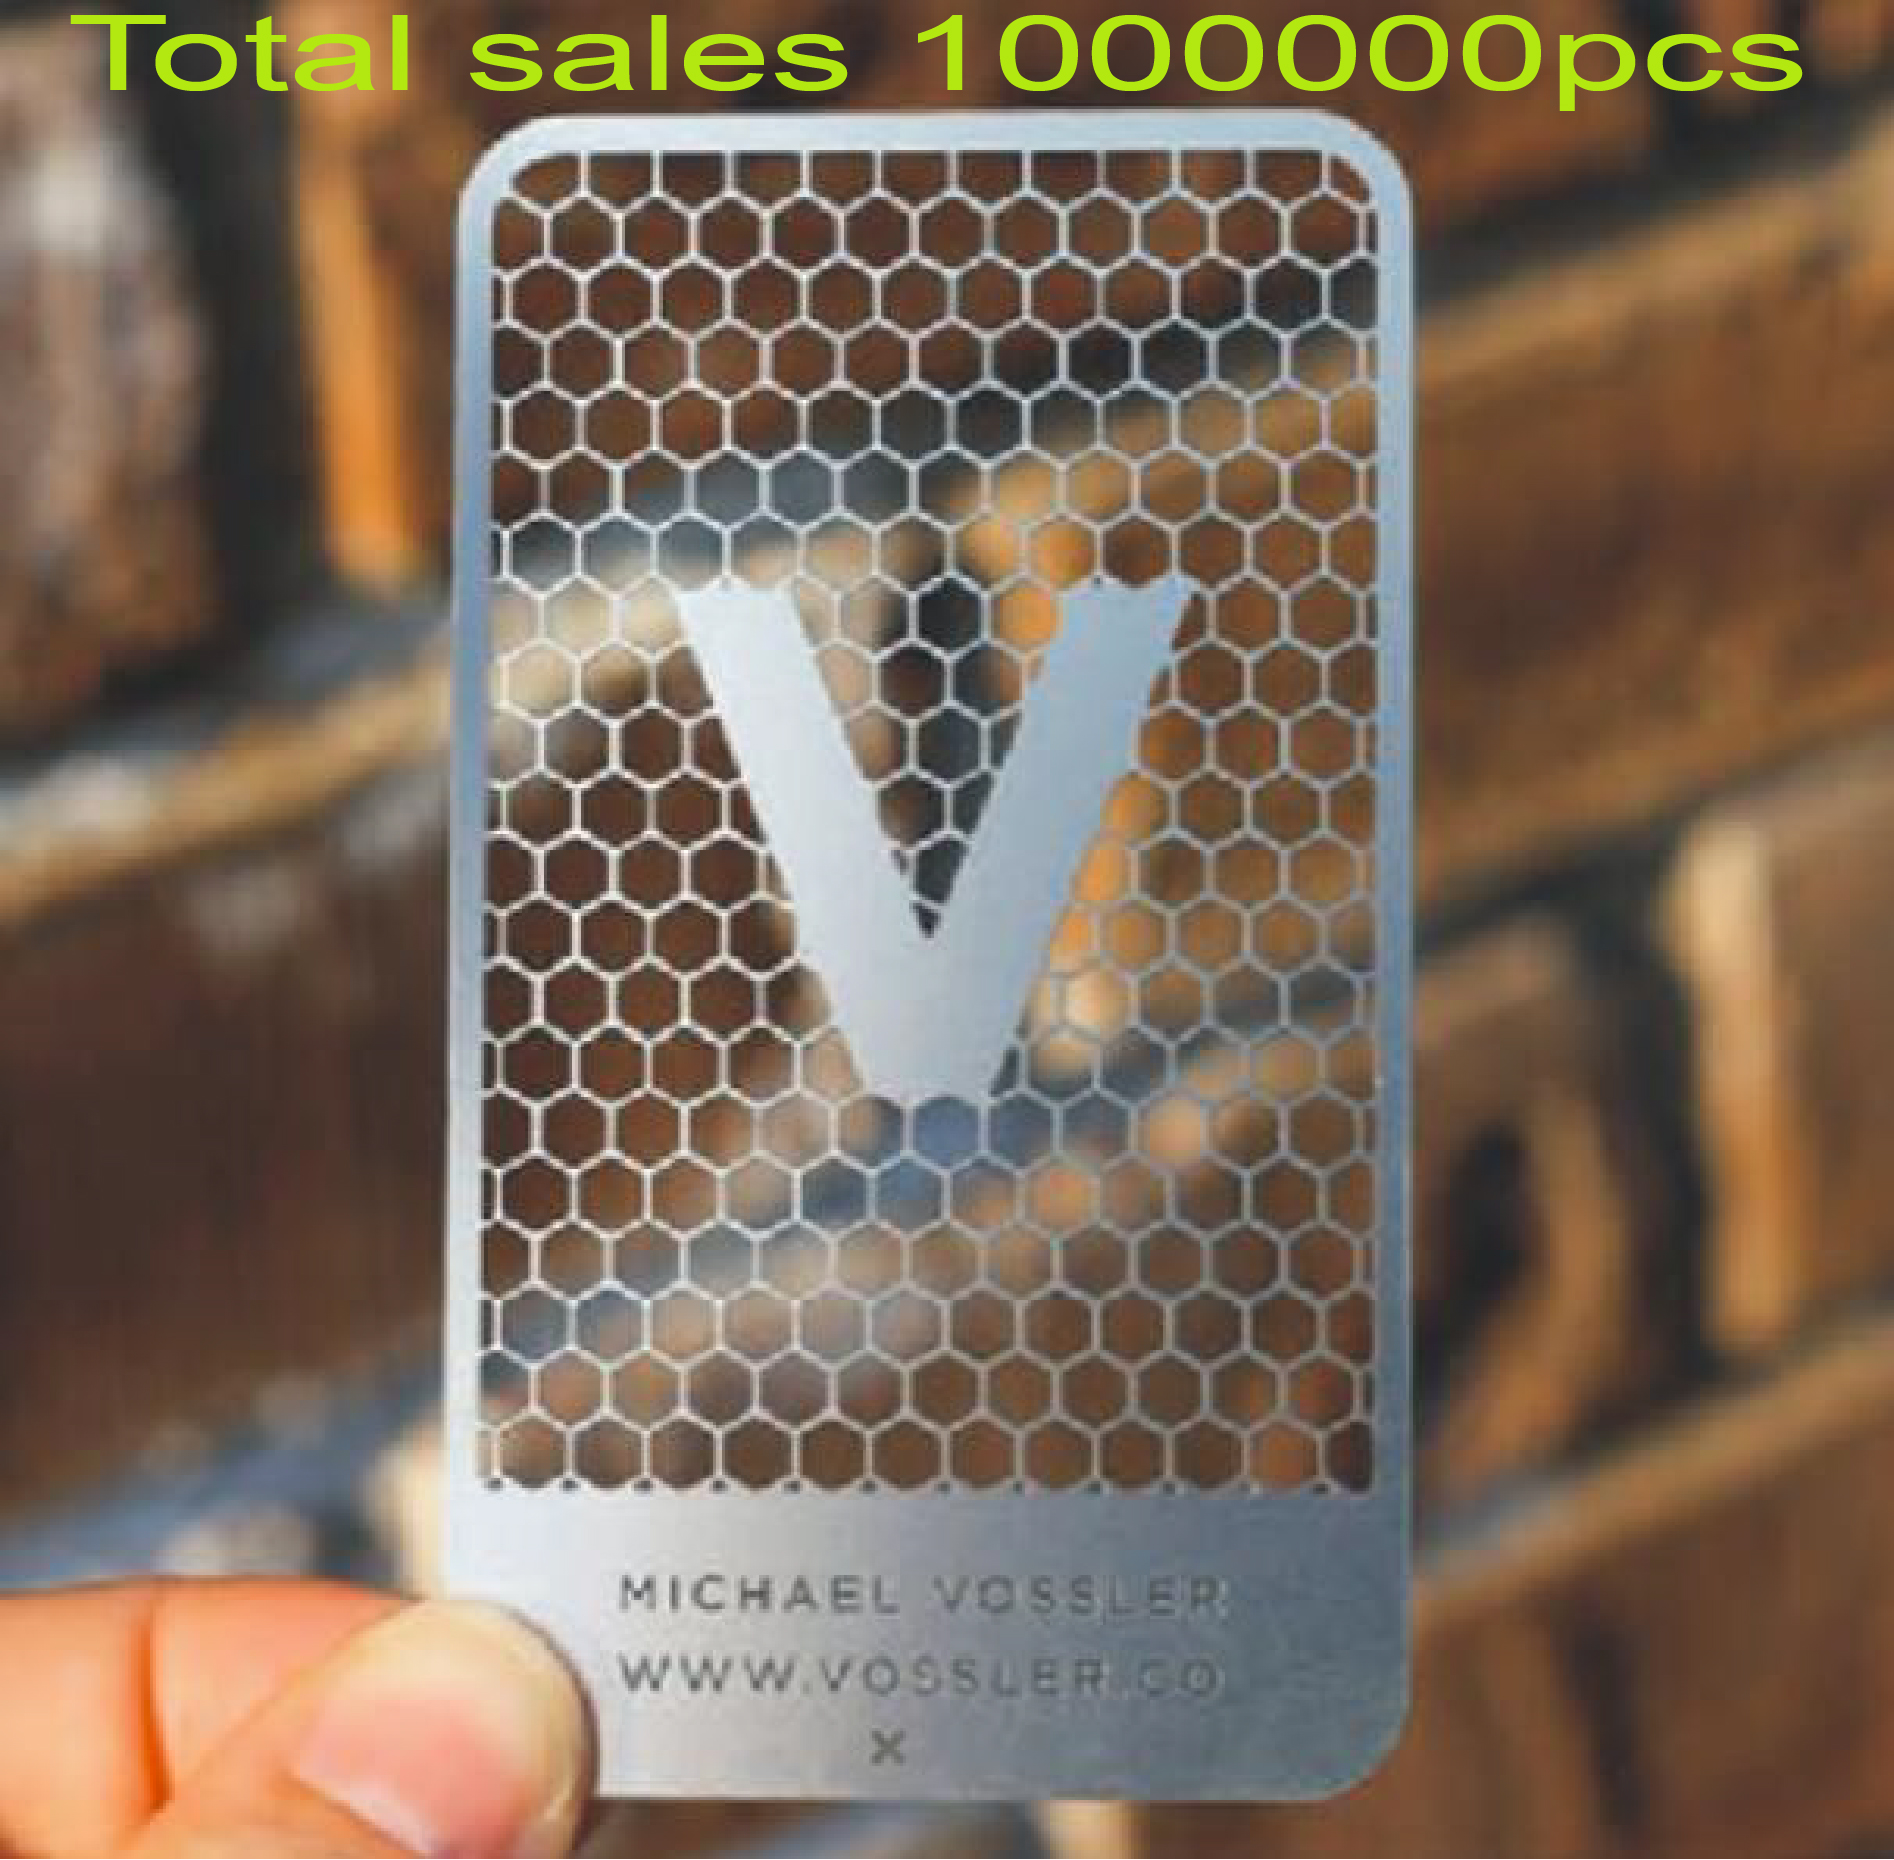 2020 New Design Factory Price High Quality Stainless Steel Card Metal Hole Punched Business Cards Printing